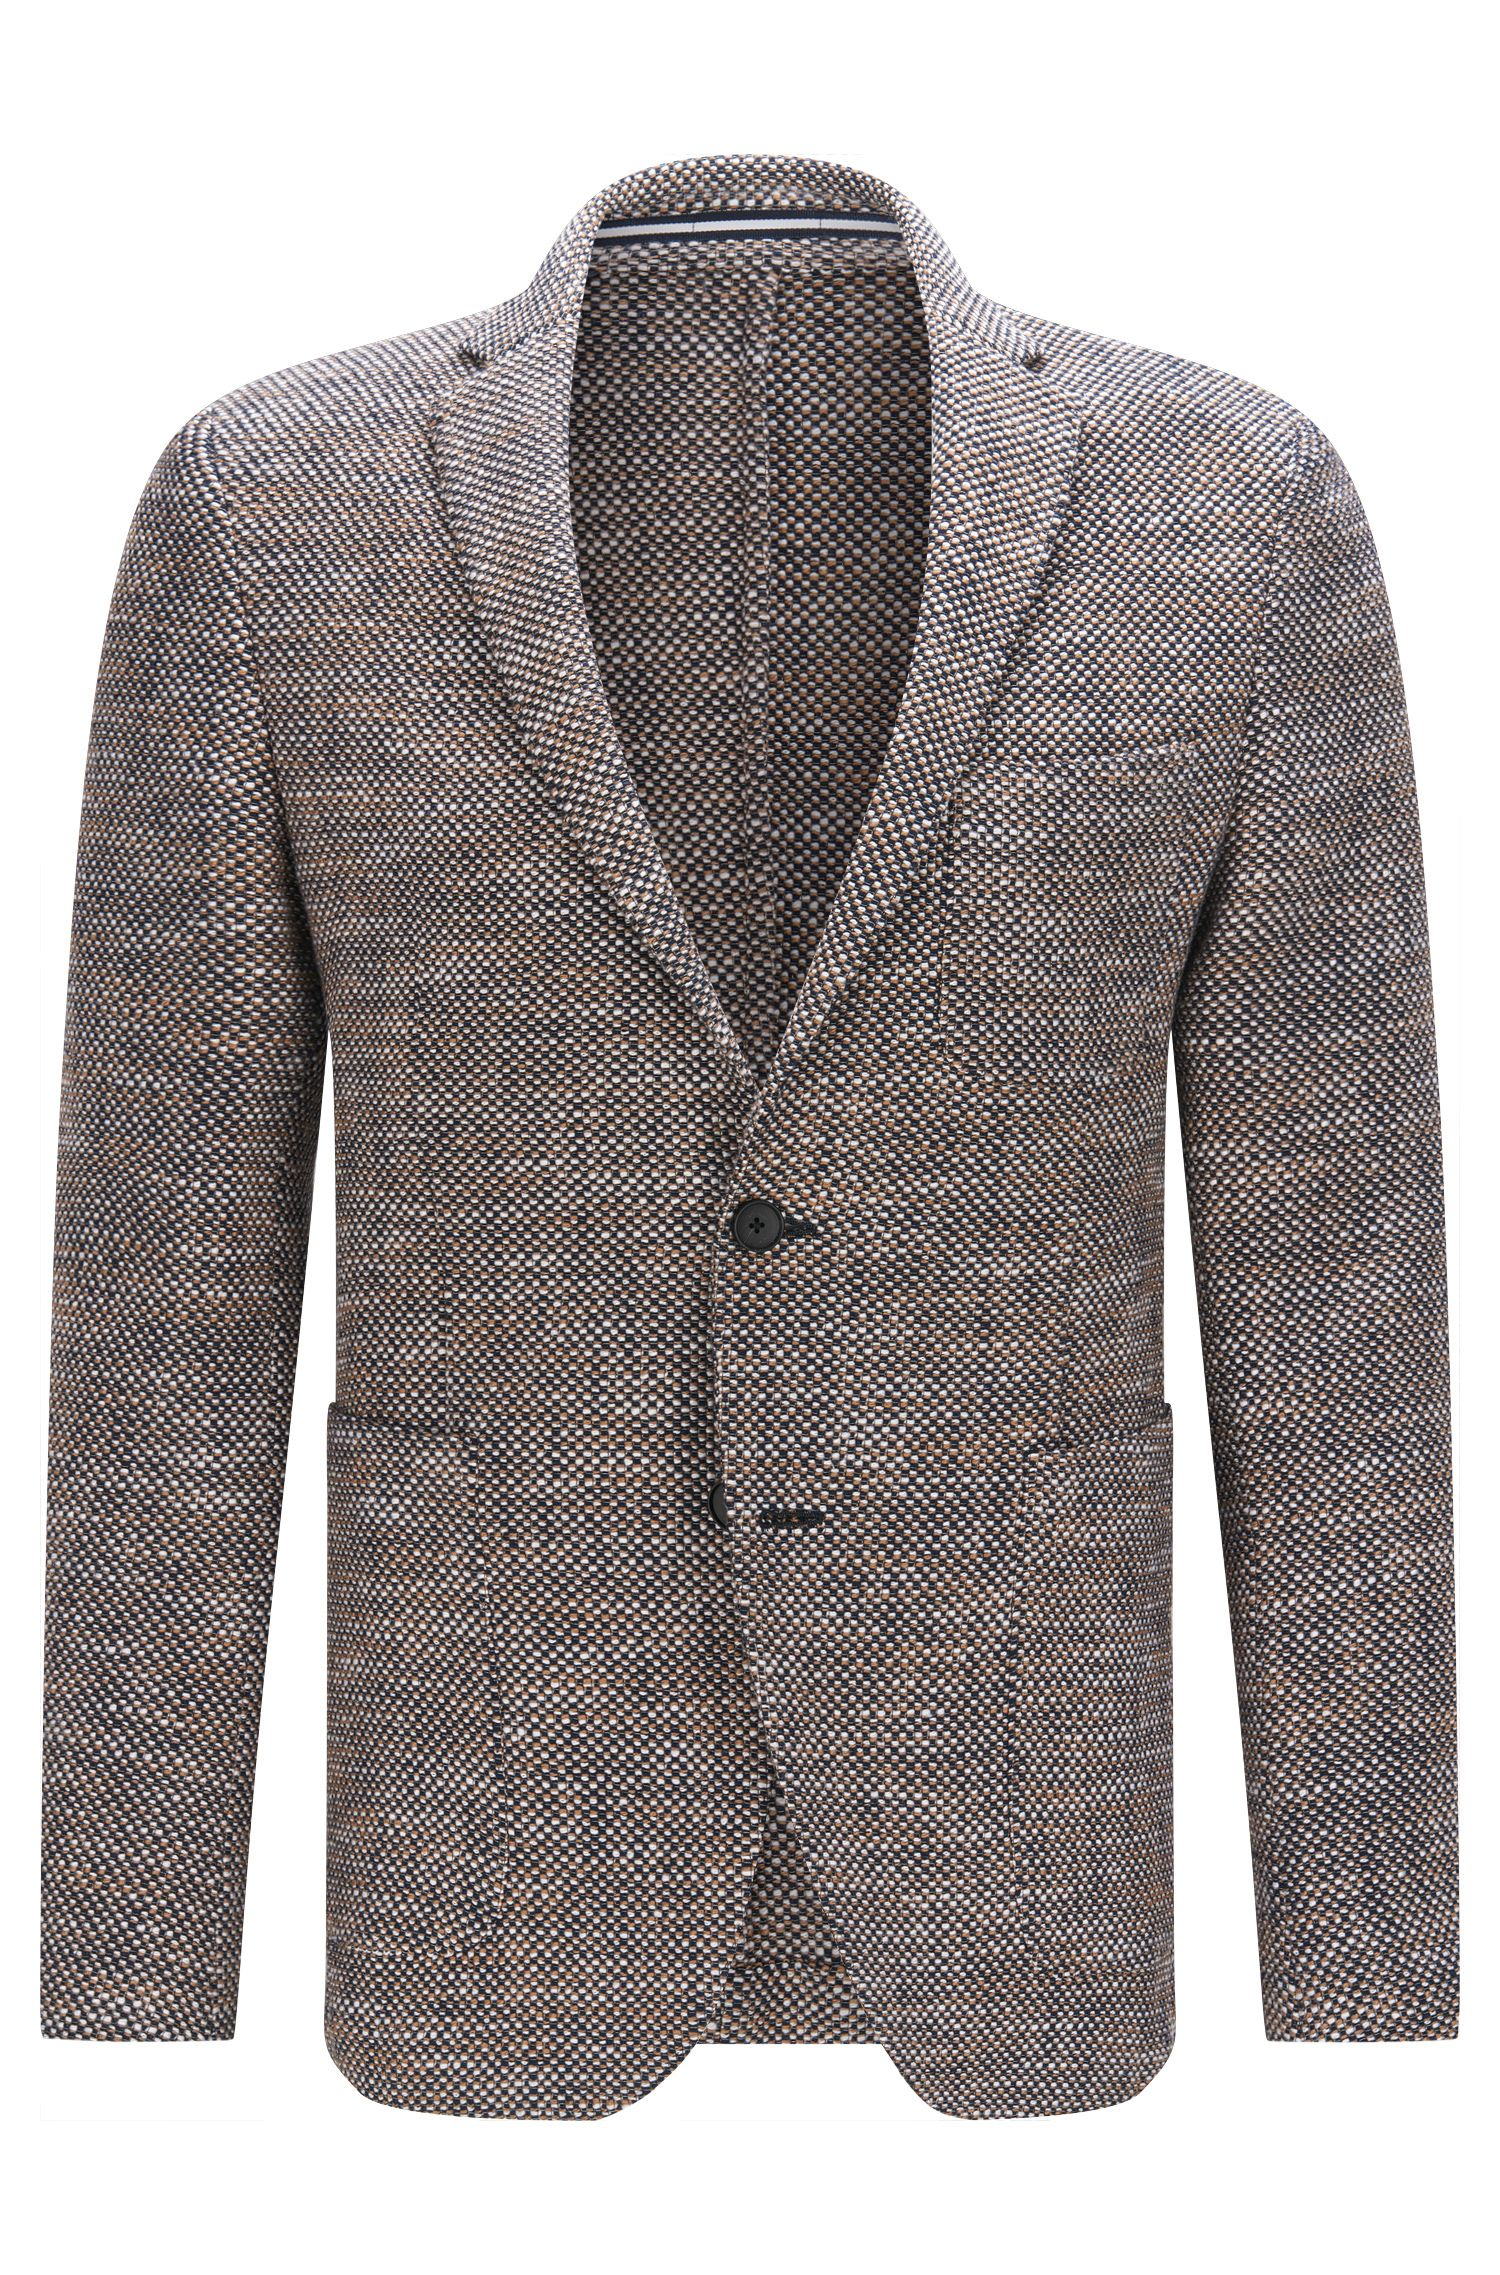 Slim-fit suit jacket in textured fabric